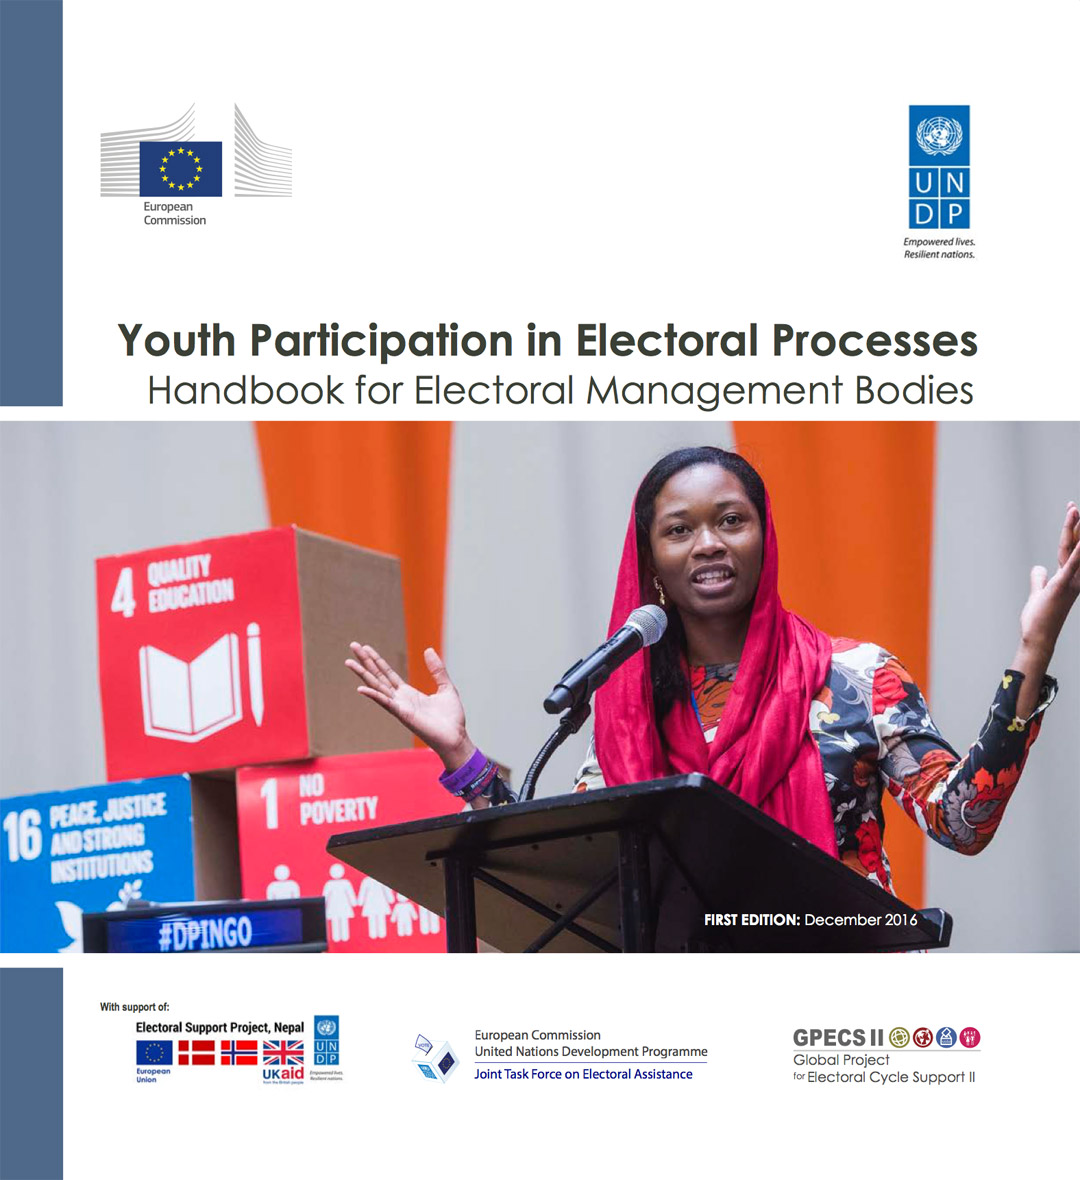 ec undp jtf publications youth participation in electoral process